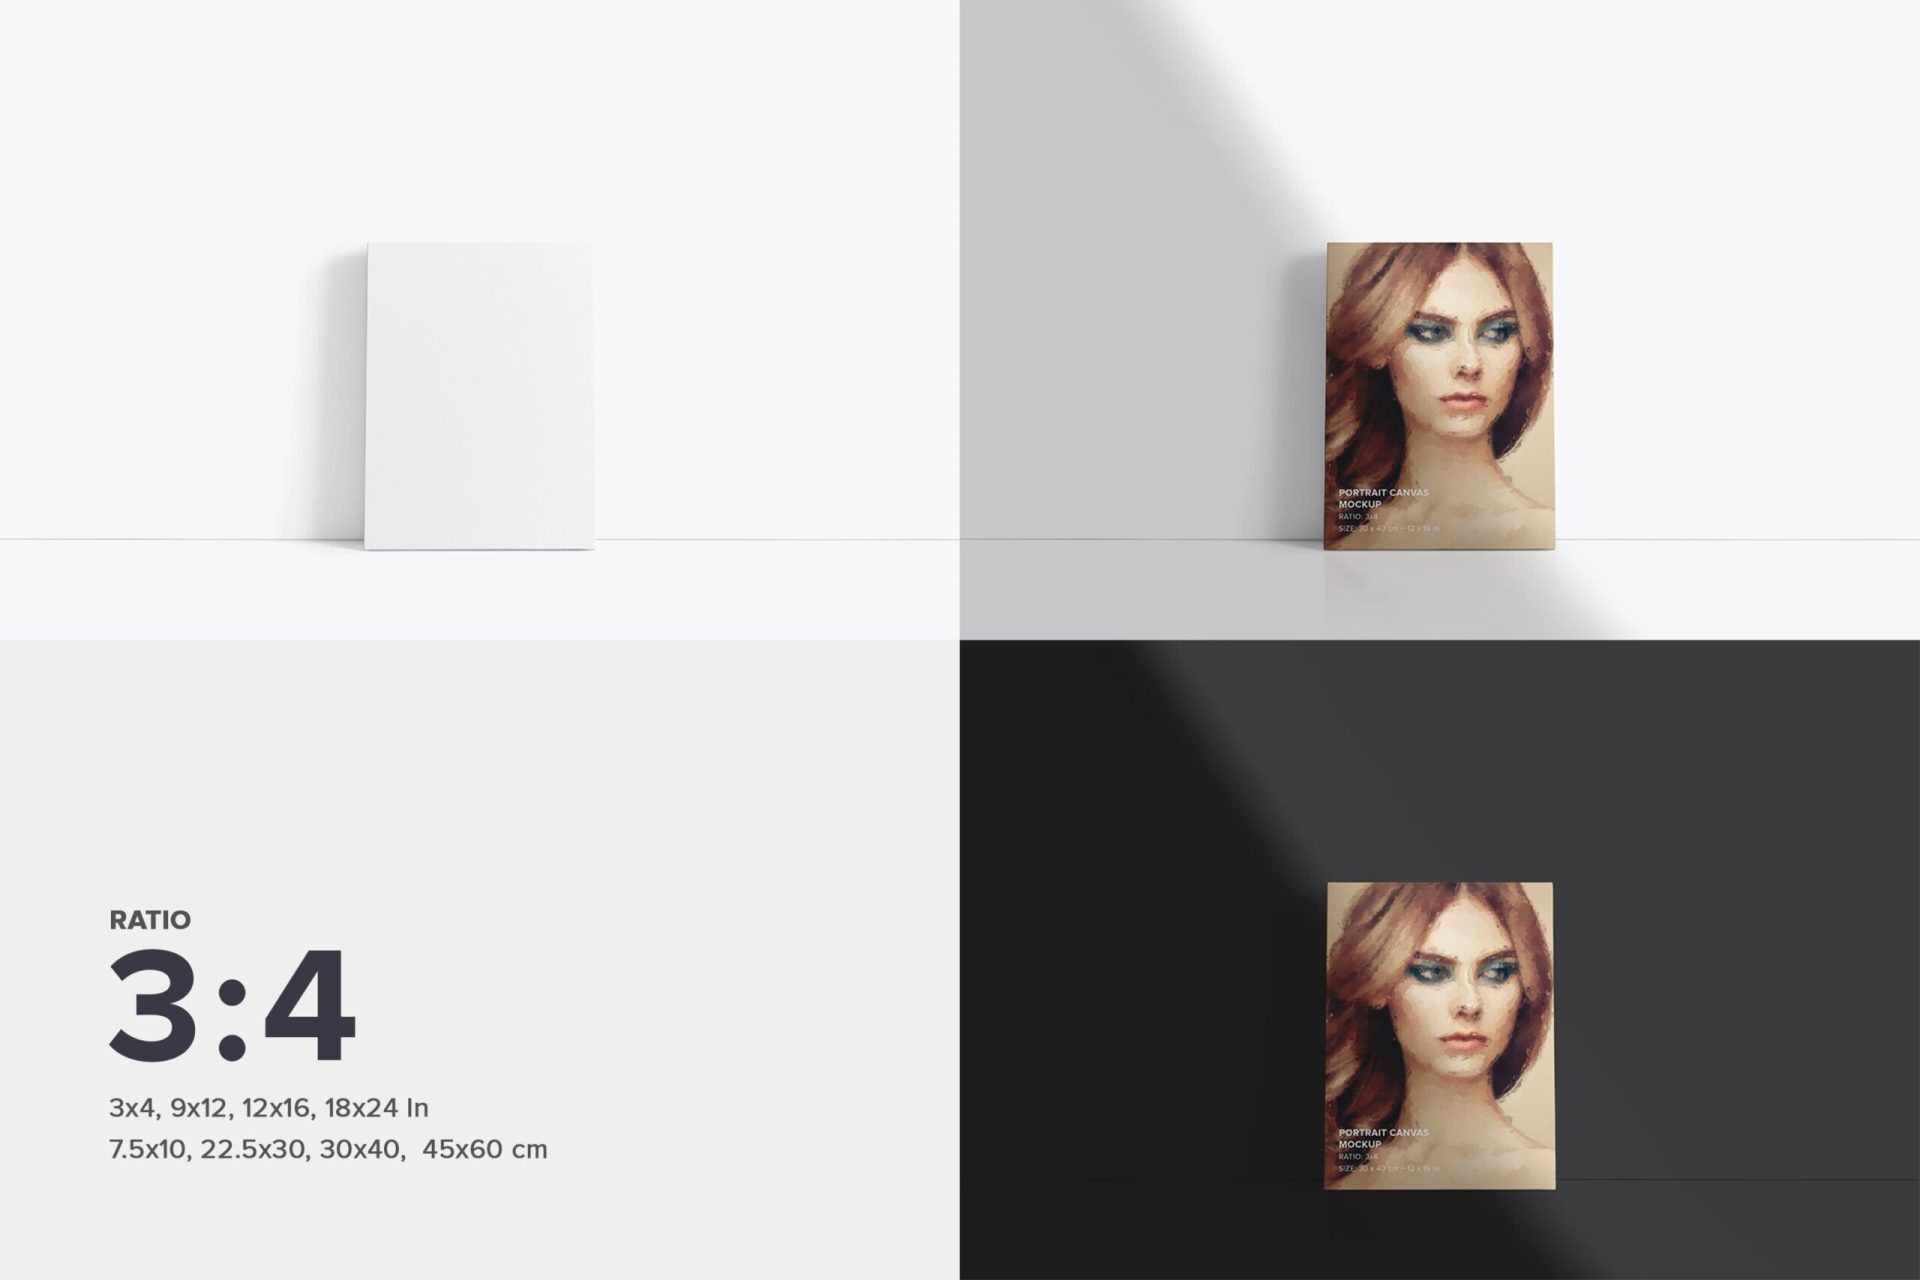 Fromt Facing Canvas 3x4 Mockup Kit